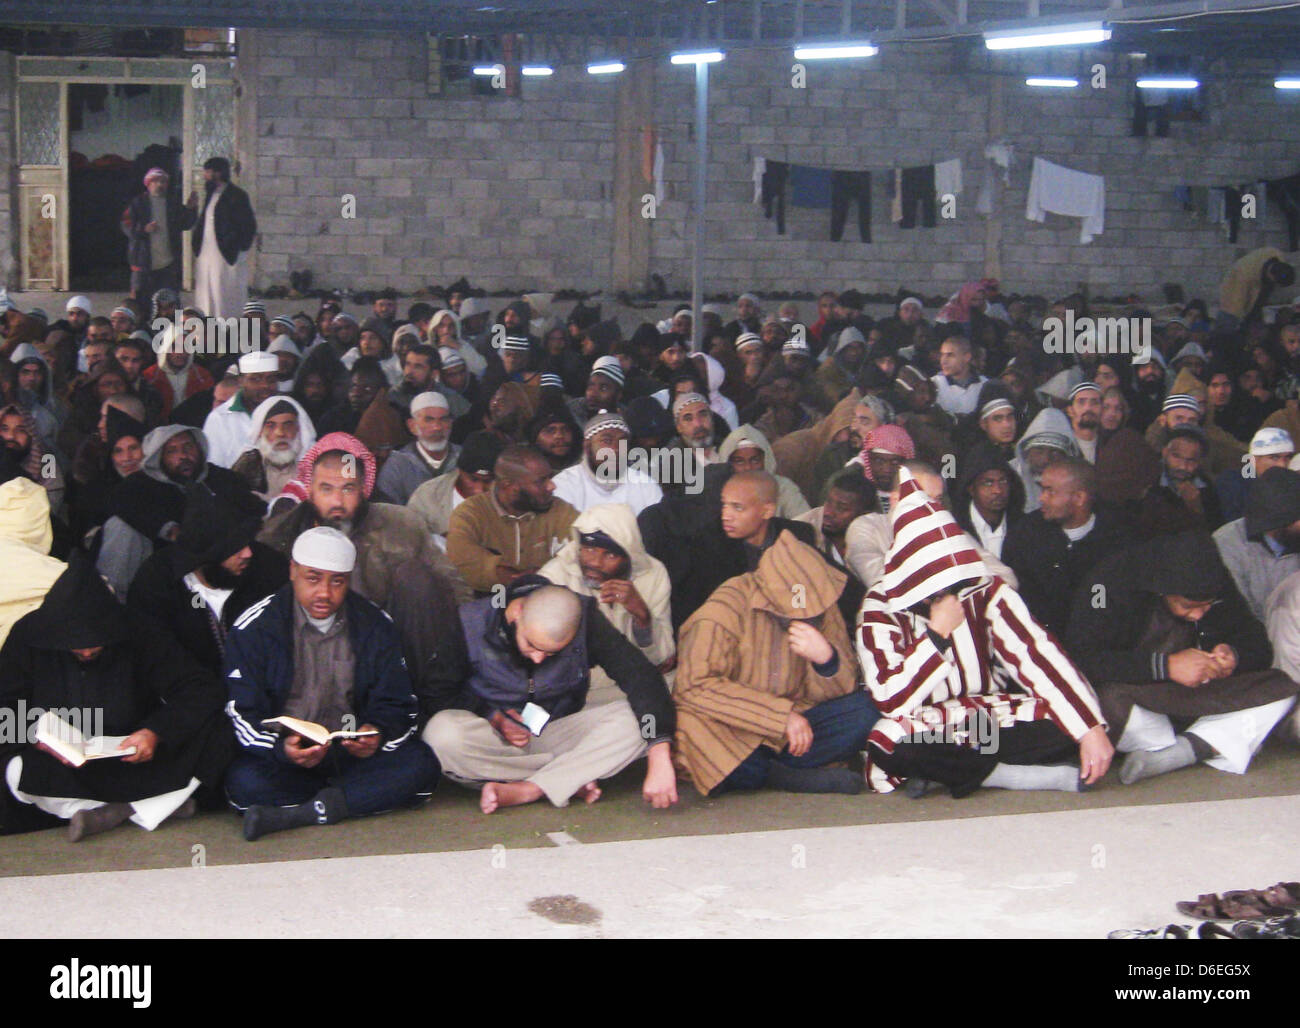 Prisoners pray in a court of the military jail in Misrata, Jibya, 29 January 2012. More than 1,000 prisoners imprisoned - Stock Image